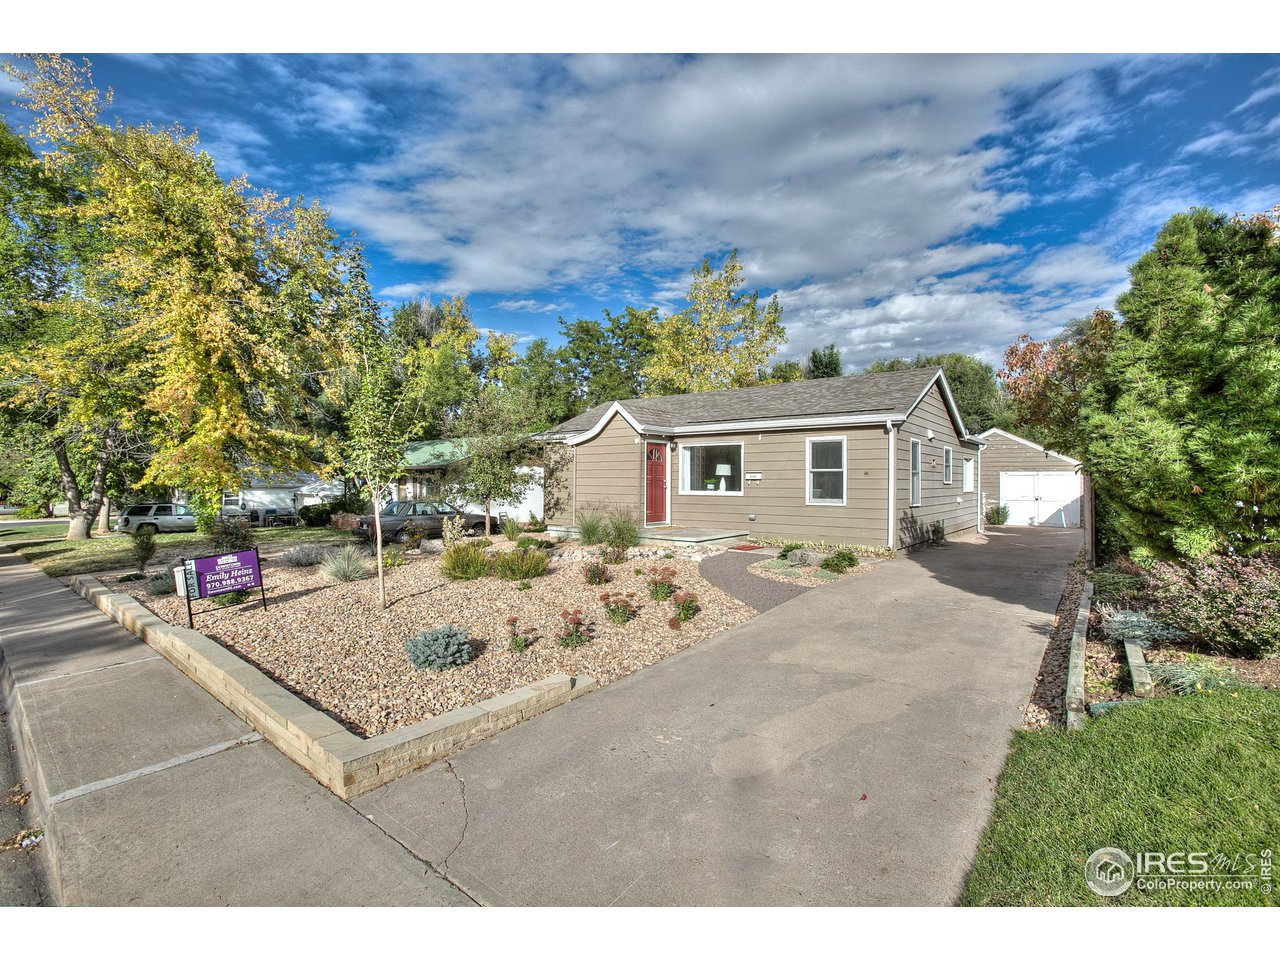 420 West St, Fort Collins CO 80521